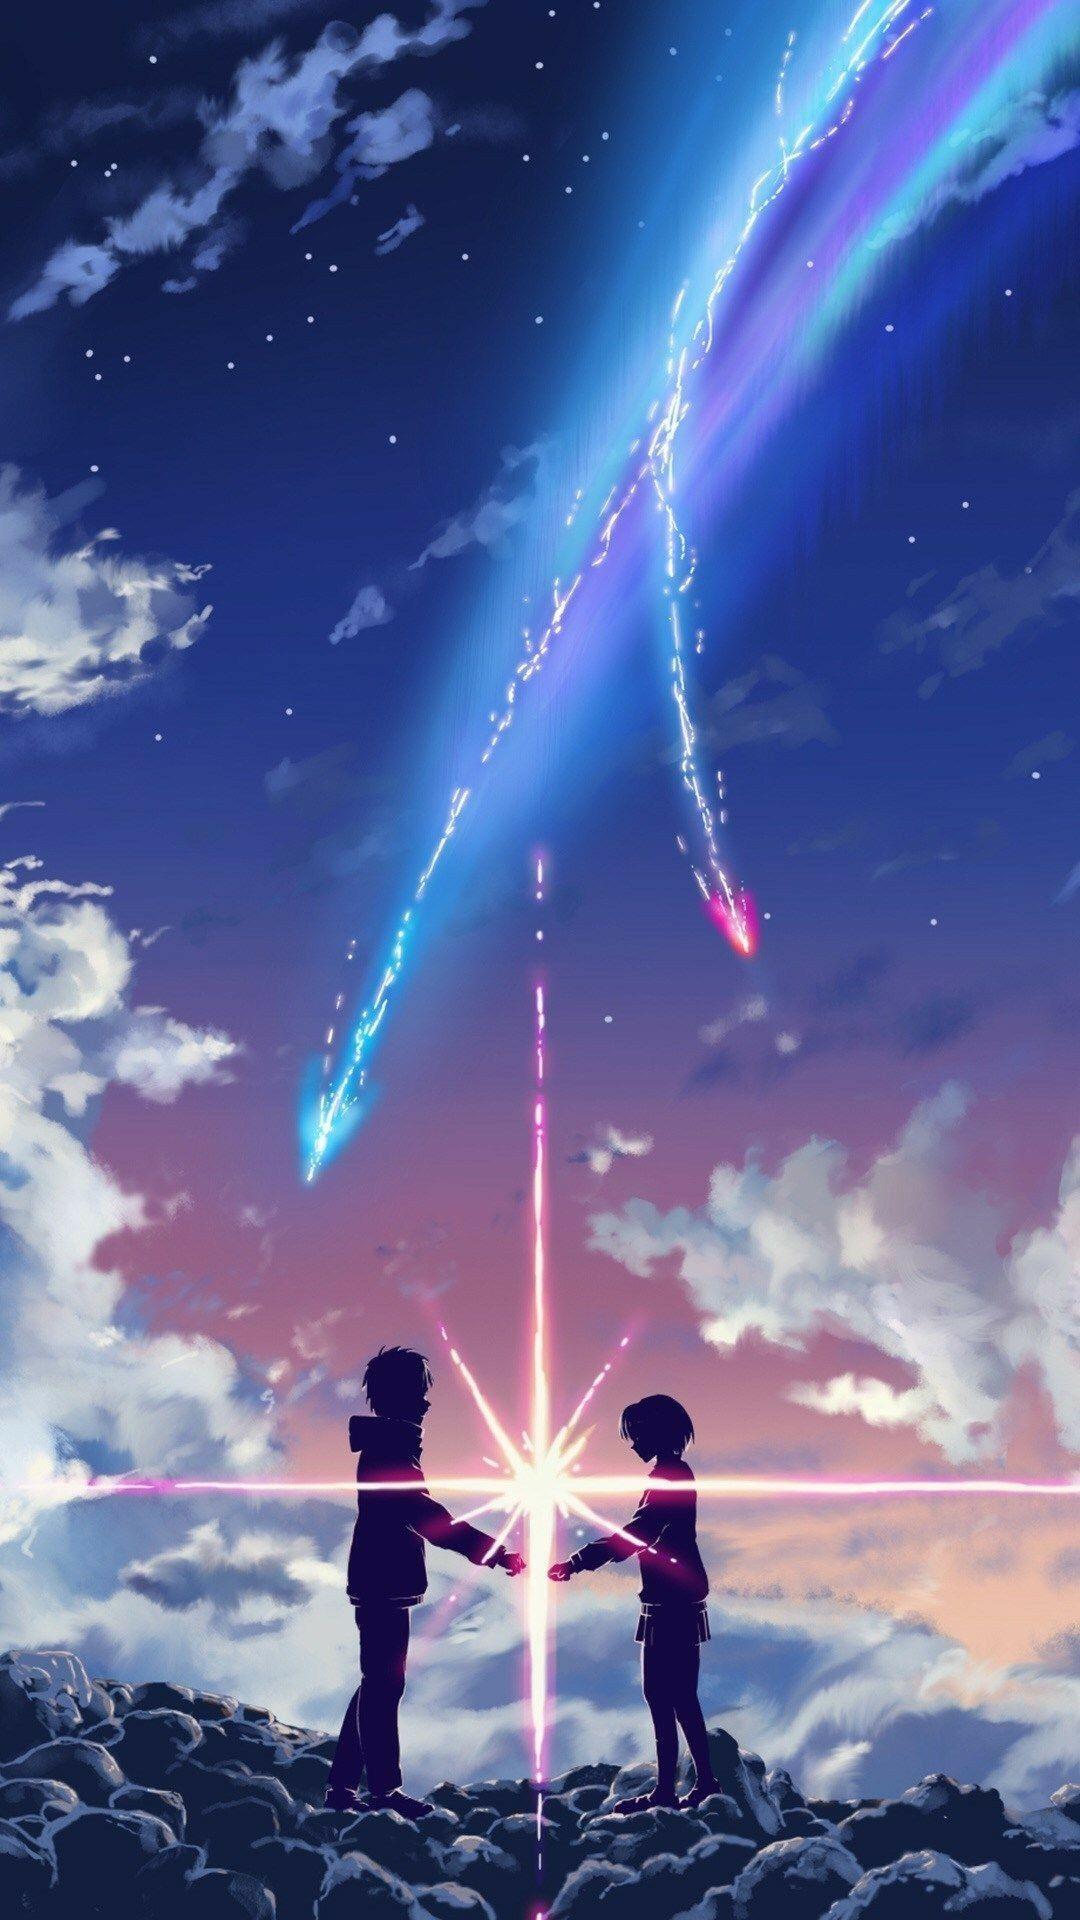 Your Name Wallpaper Iphone Xr : wallpaper, iphone, Royyan, Papéis, Parede, Movie,, Anime, Backgrounds, Wallpapers,, Wallpaper, Download